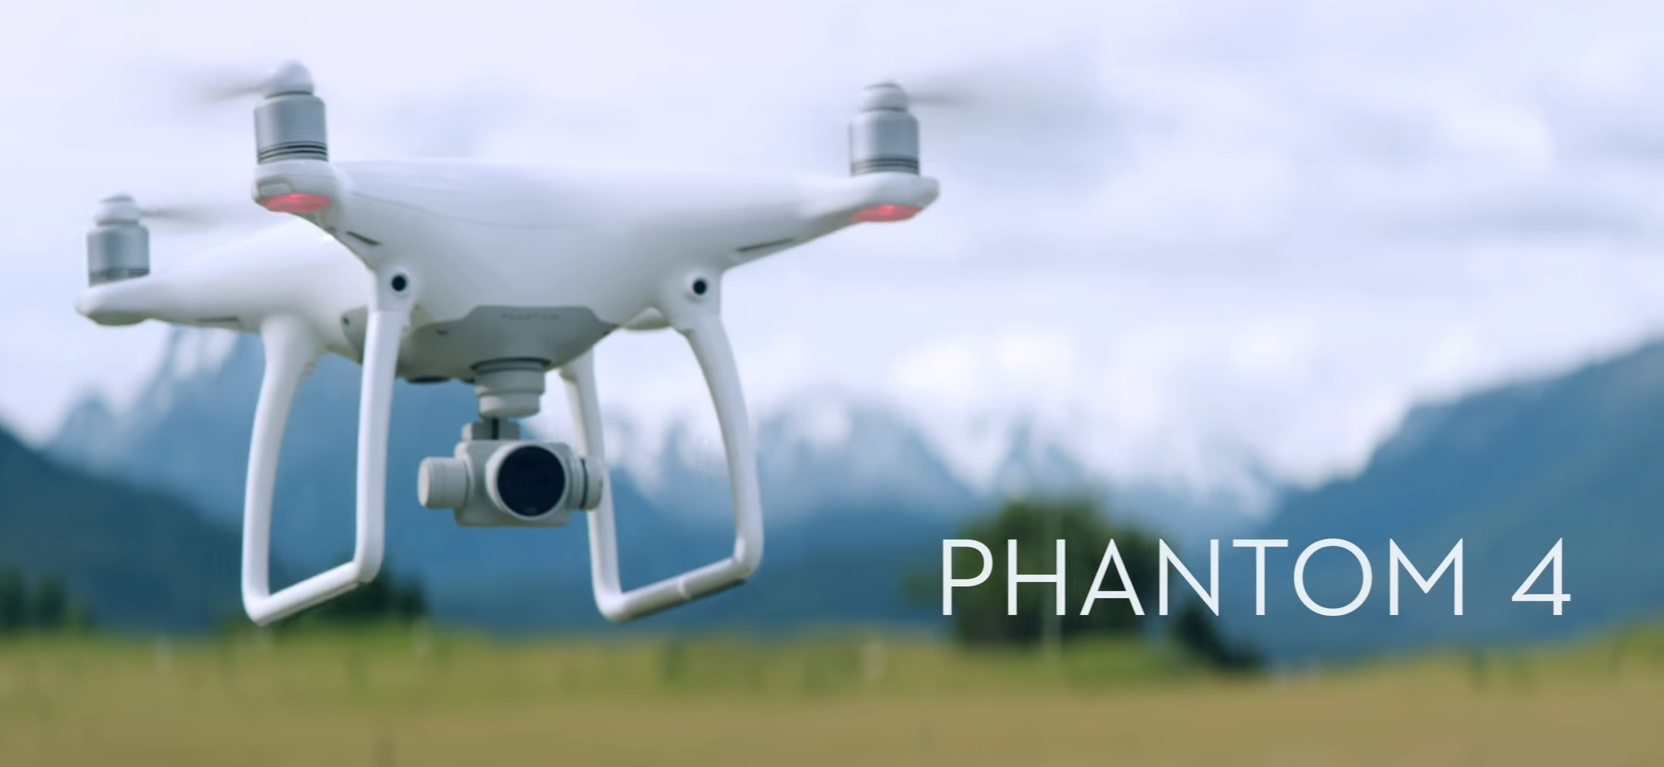 us drone s with Dji Announces The Phantom 4 With Smart Collision Avoidance New Automatic Flight Modes And A Host Of Other Improvements on Dji Announces The Phantom 4 With Smart Collision Avoidance New Automatic Flight Modes And A Host Of Other Improvements in addition Data Driven Farming With Agricultural Drones together with Behold Xm42 Flamethrower Terrifying Weapon You Can Now Easily Buy Online additionally Hd Digital Wallpaper Backgrounds For Free Download as well Coron Islands Palawan Philippines.